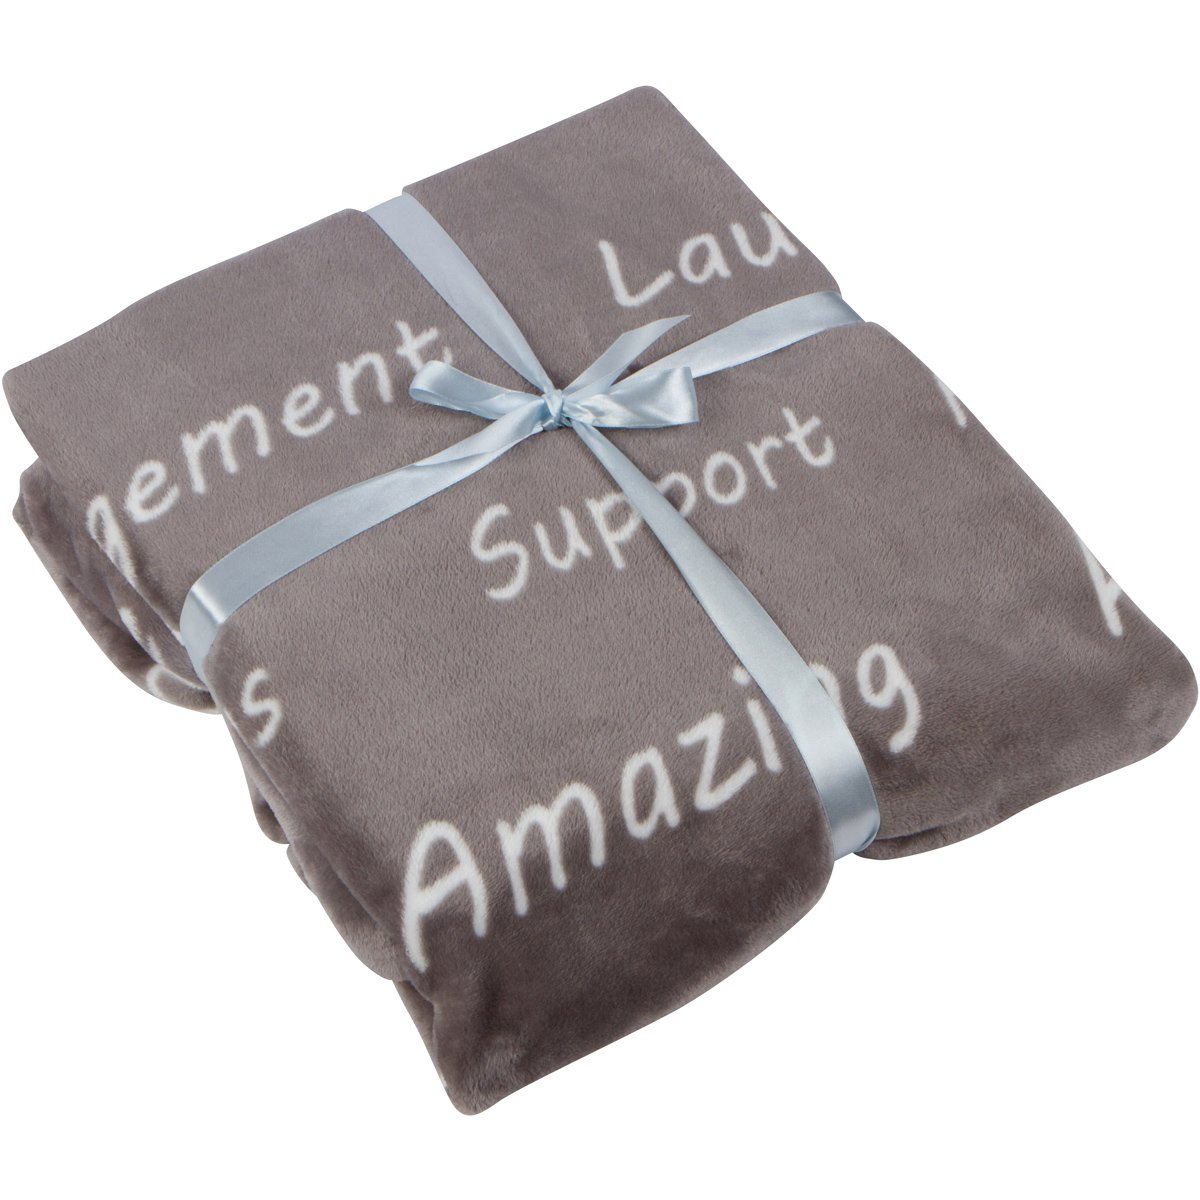 Healing Thoughts Throw Blanket - Inspiring Comforting Positive Words Get Well Gifts - Grey 50 x 60 - Gift Ready